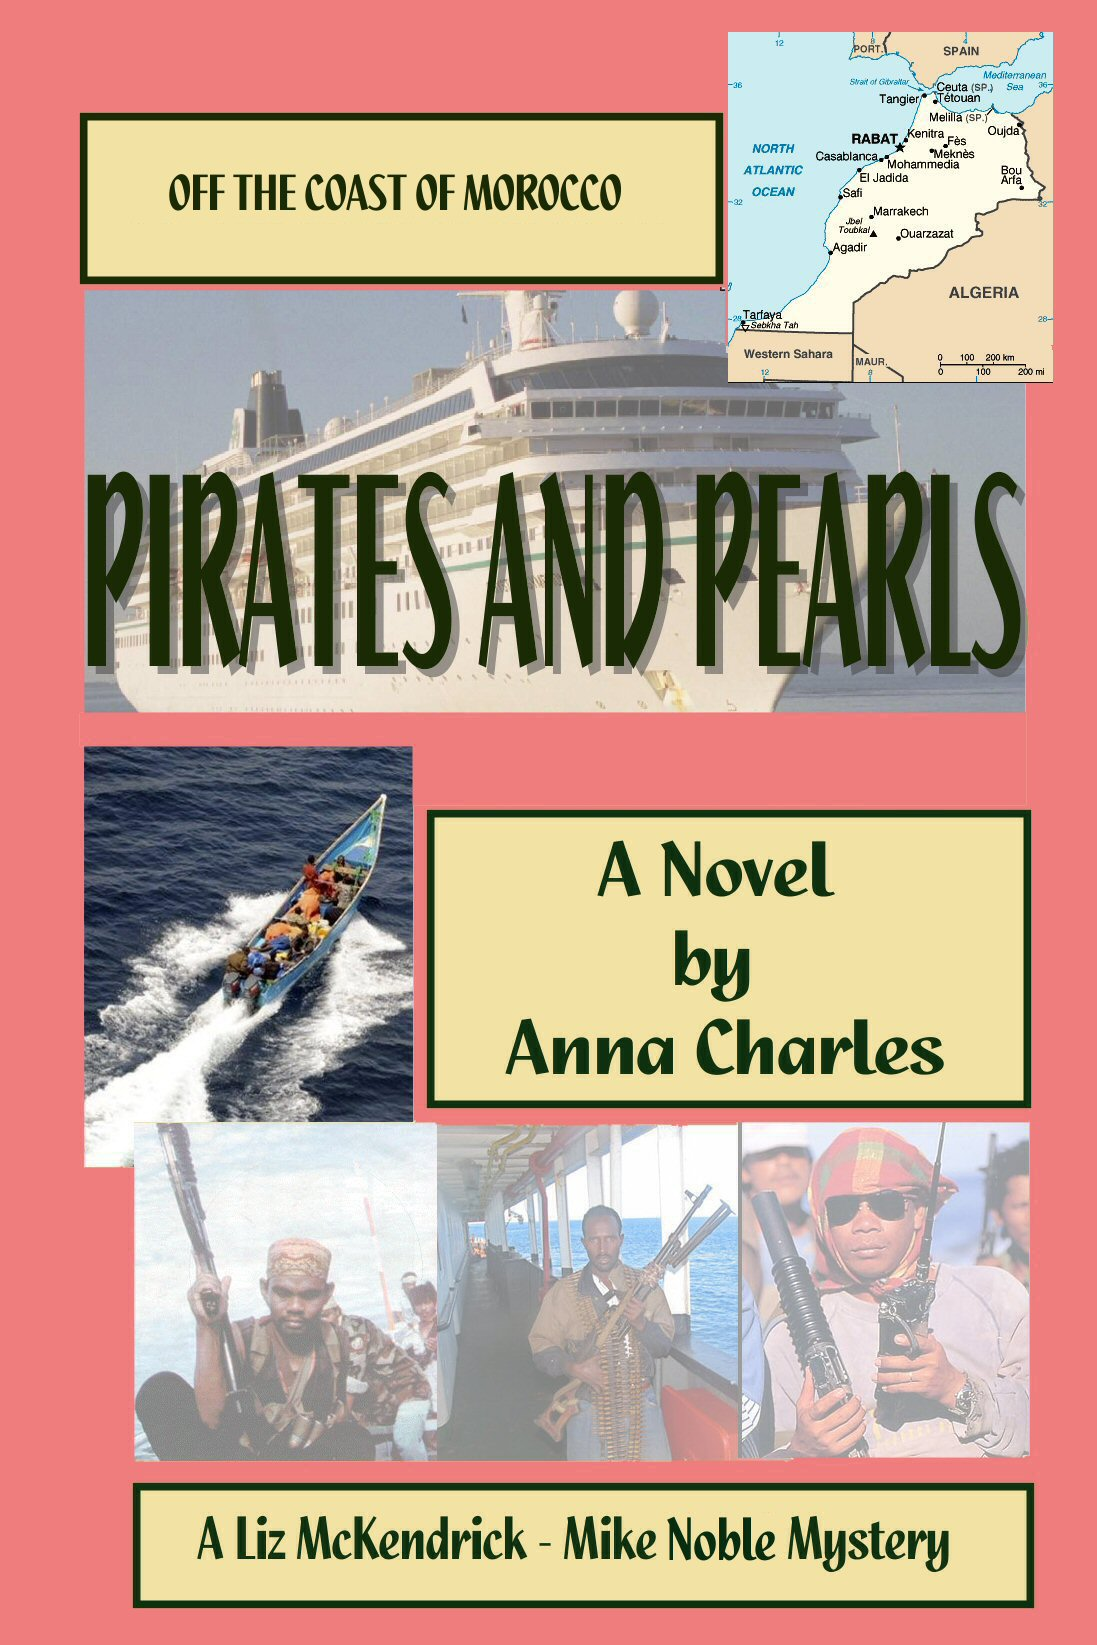 My Book Pirates and Pearls